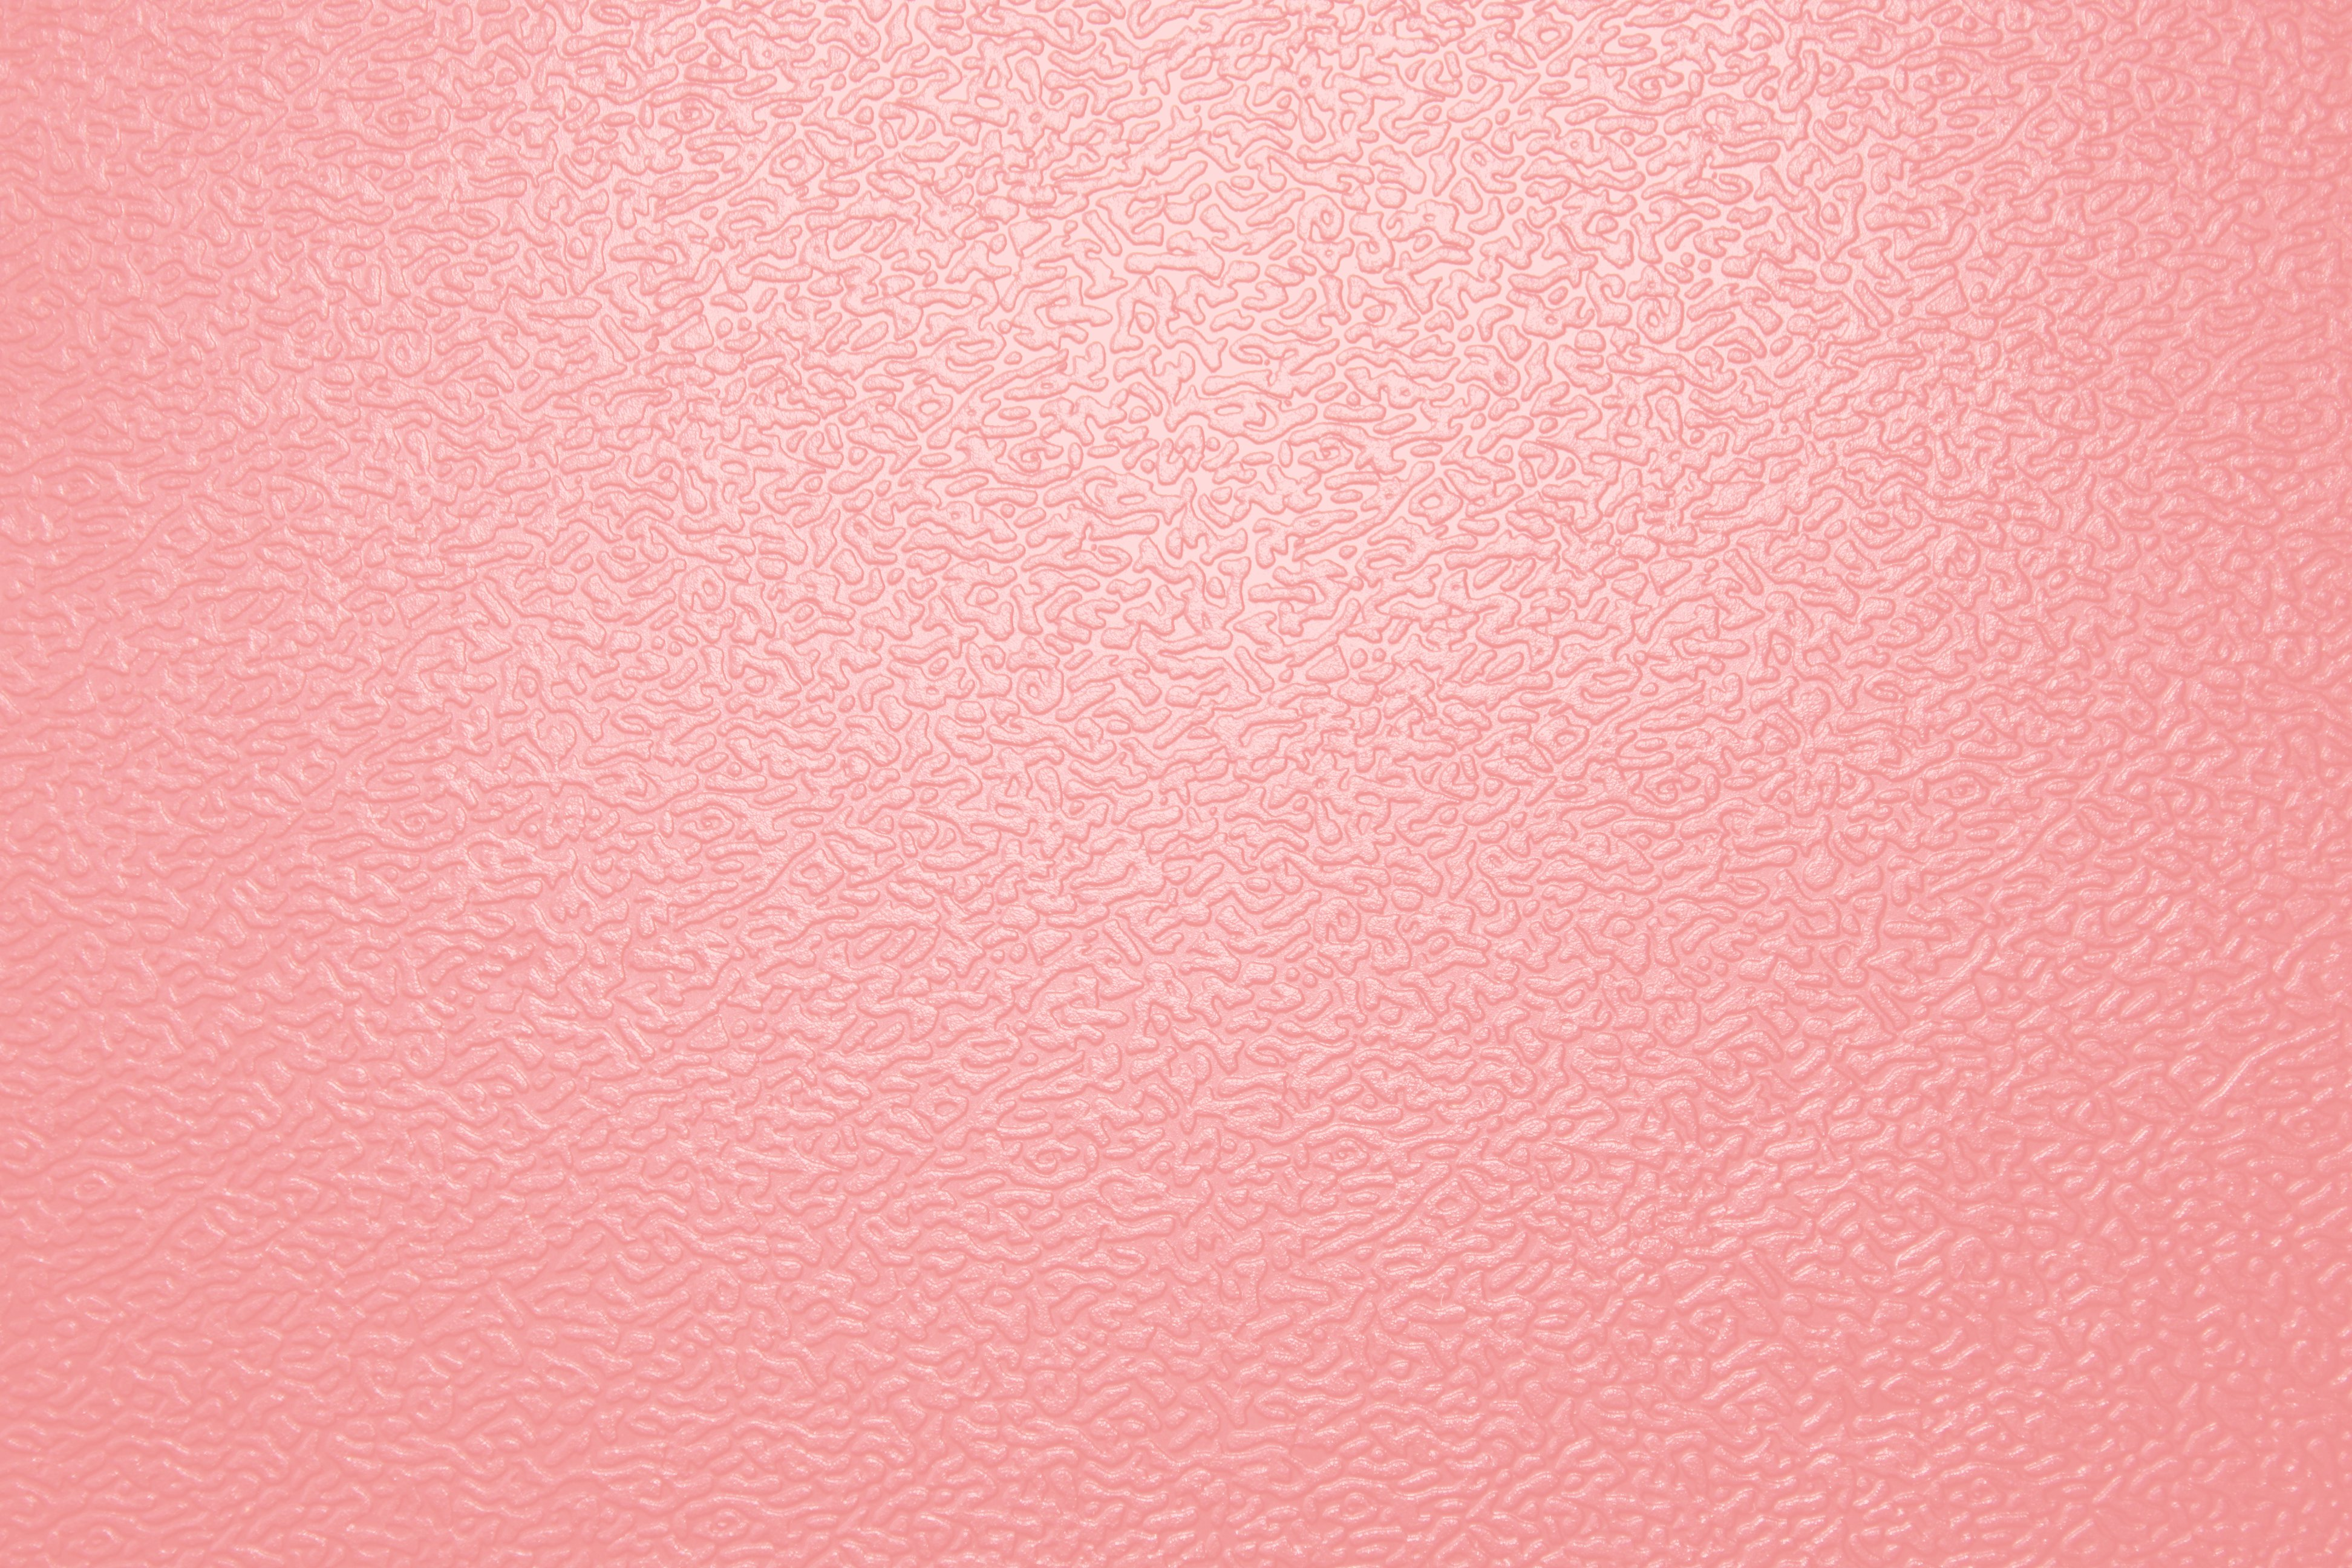 Textured Salmon Pink Colored Plastic Close Up   High Resolution 3888x2592